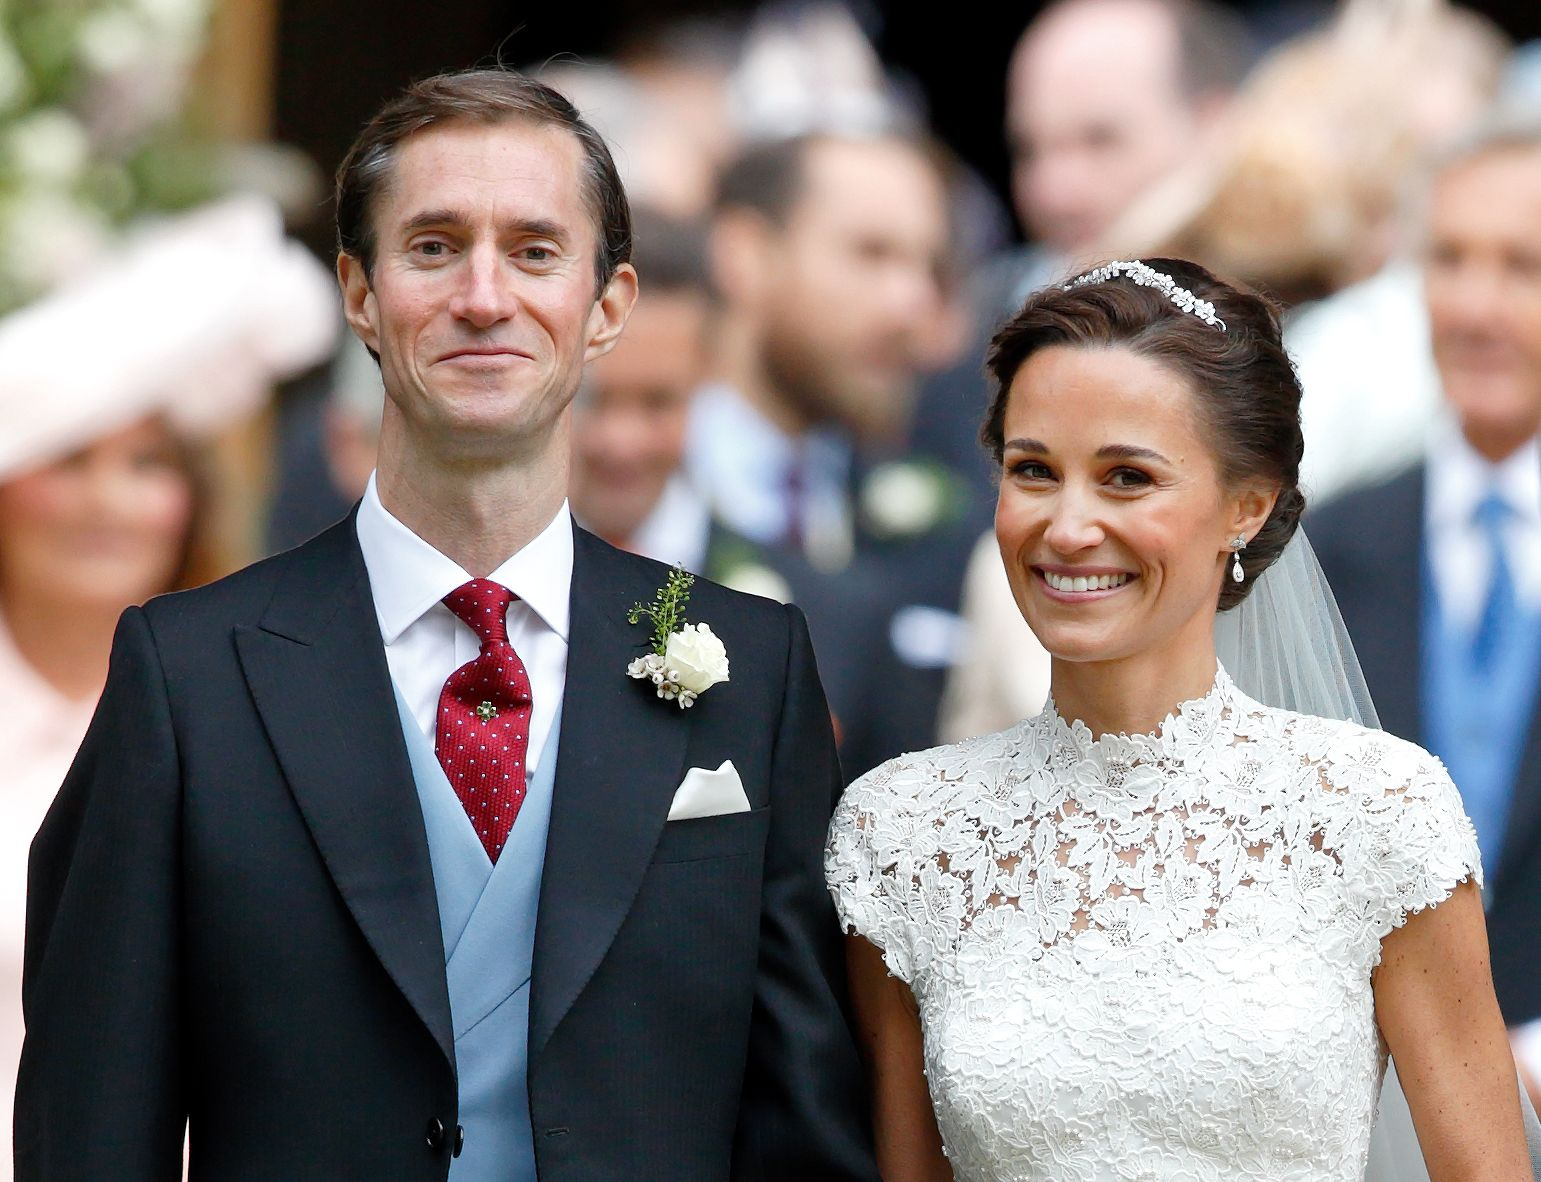 James Matthews and Pippa Middleton as they left St Mark's Church after their wedding on May 20, 2017 | Photo: Getty Images